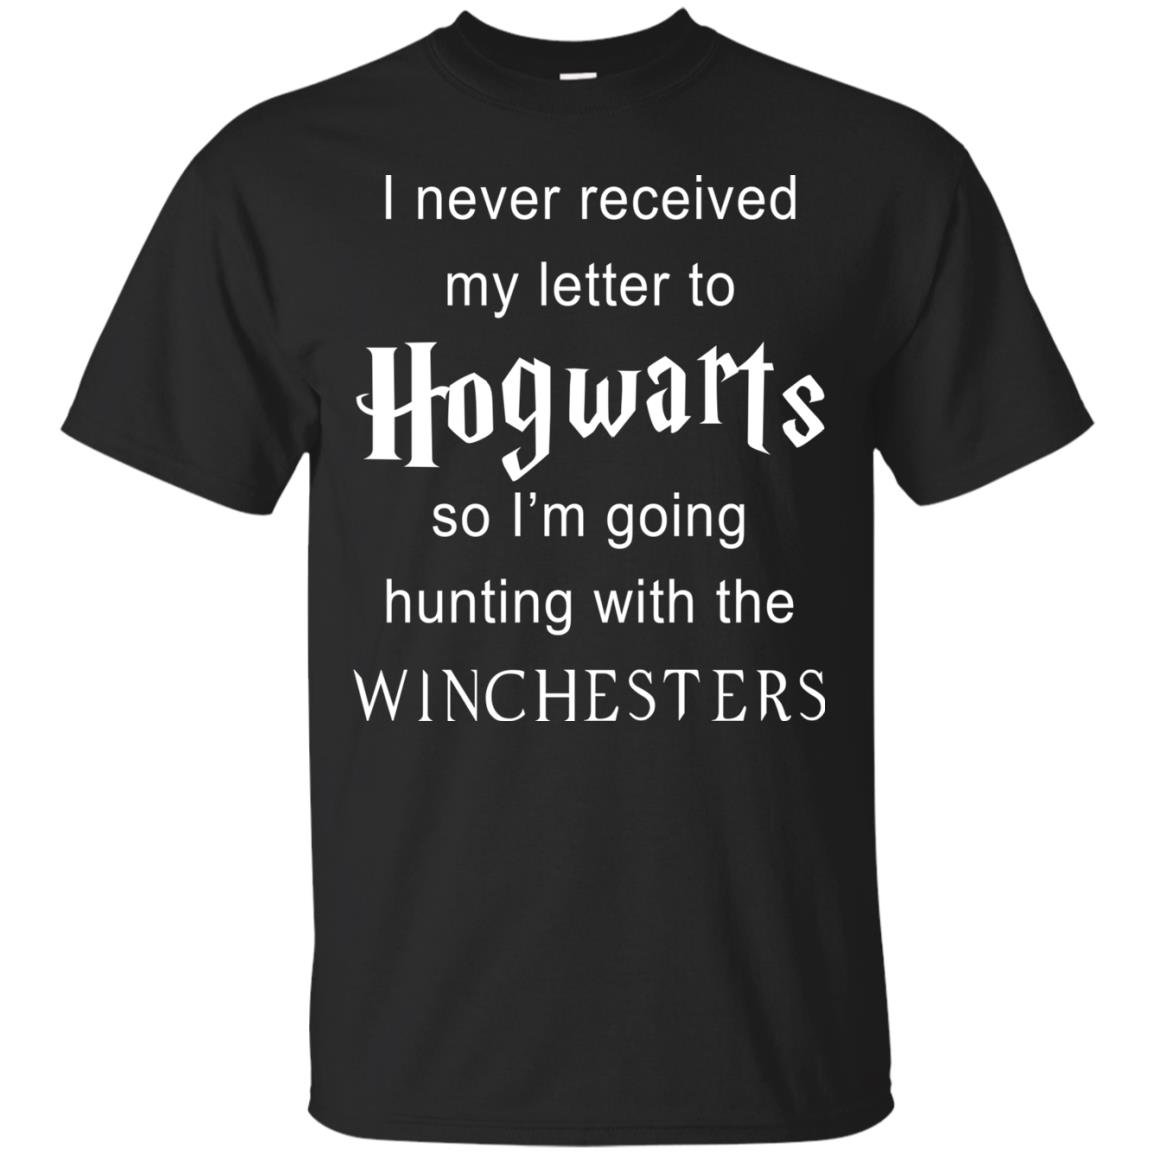 image 1944 - I never received my letter to Hogwarts shirt, hoodie, long sleeve